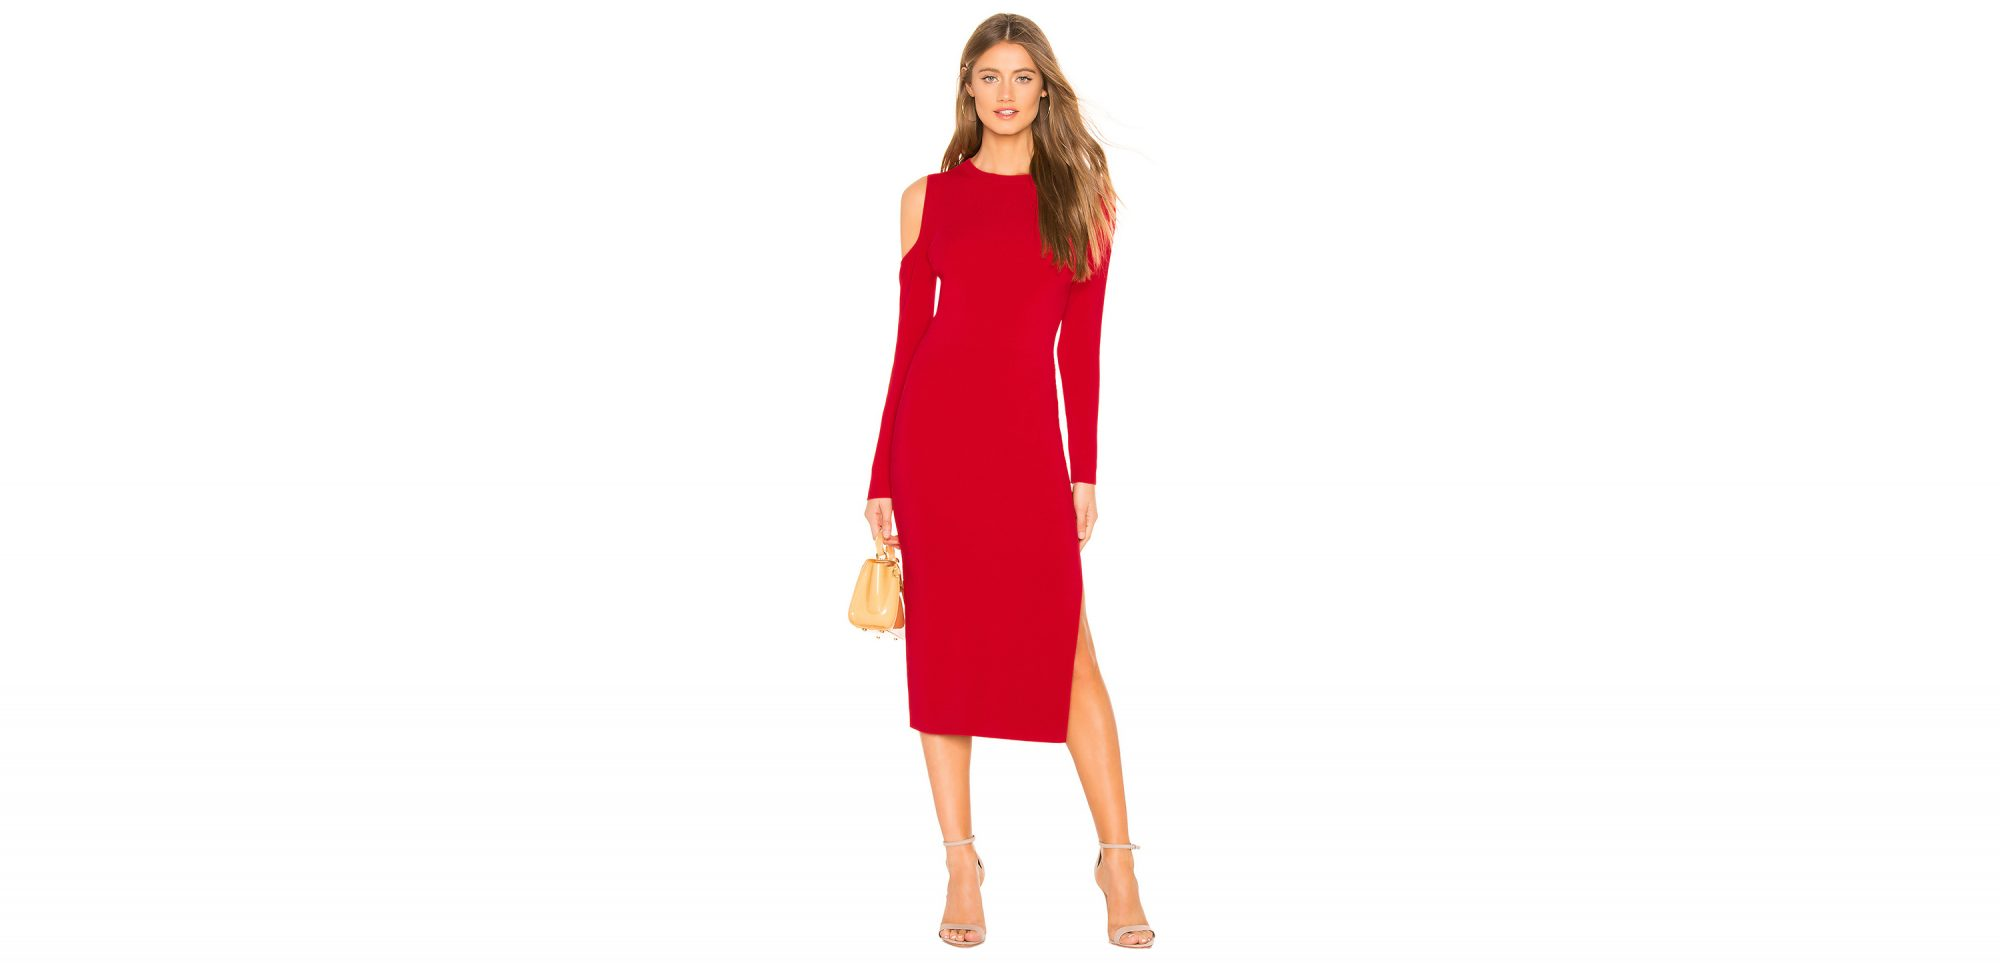 d950896c2c9 How to Copy Meghan Markle s Stunning Red Dress for Less